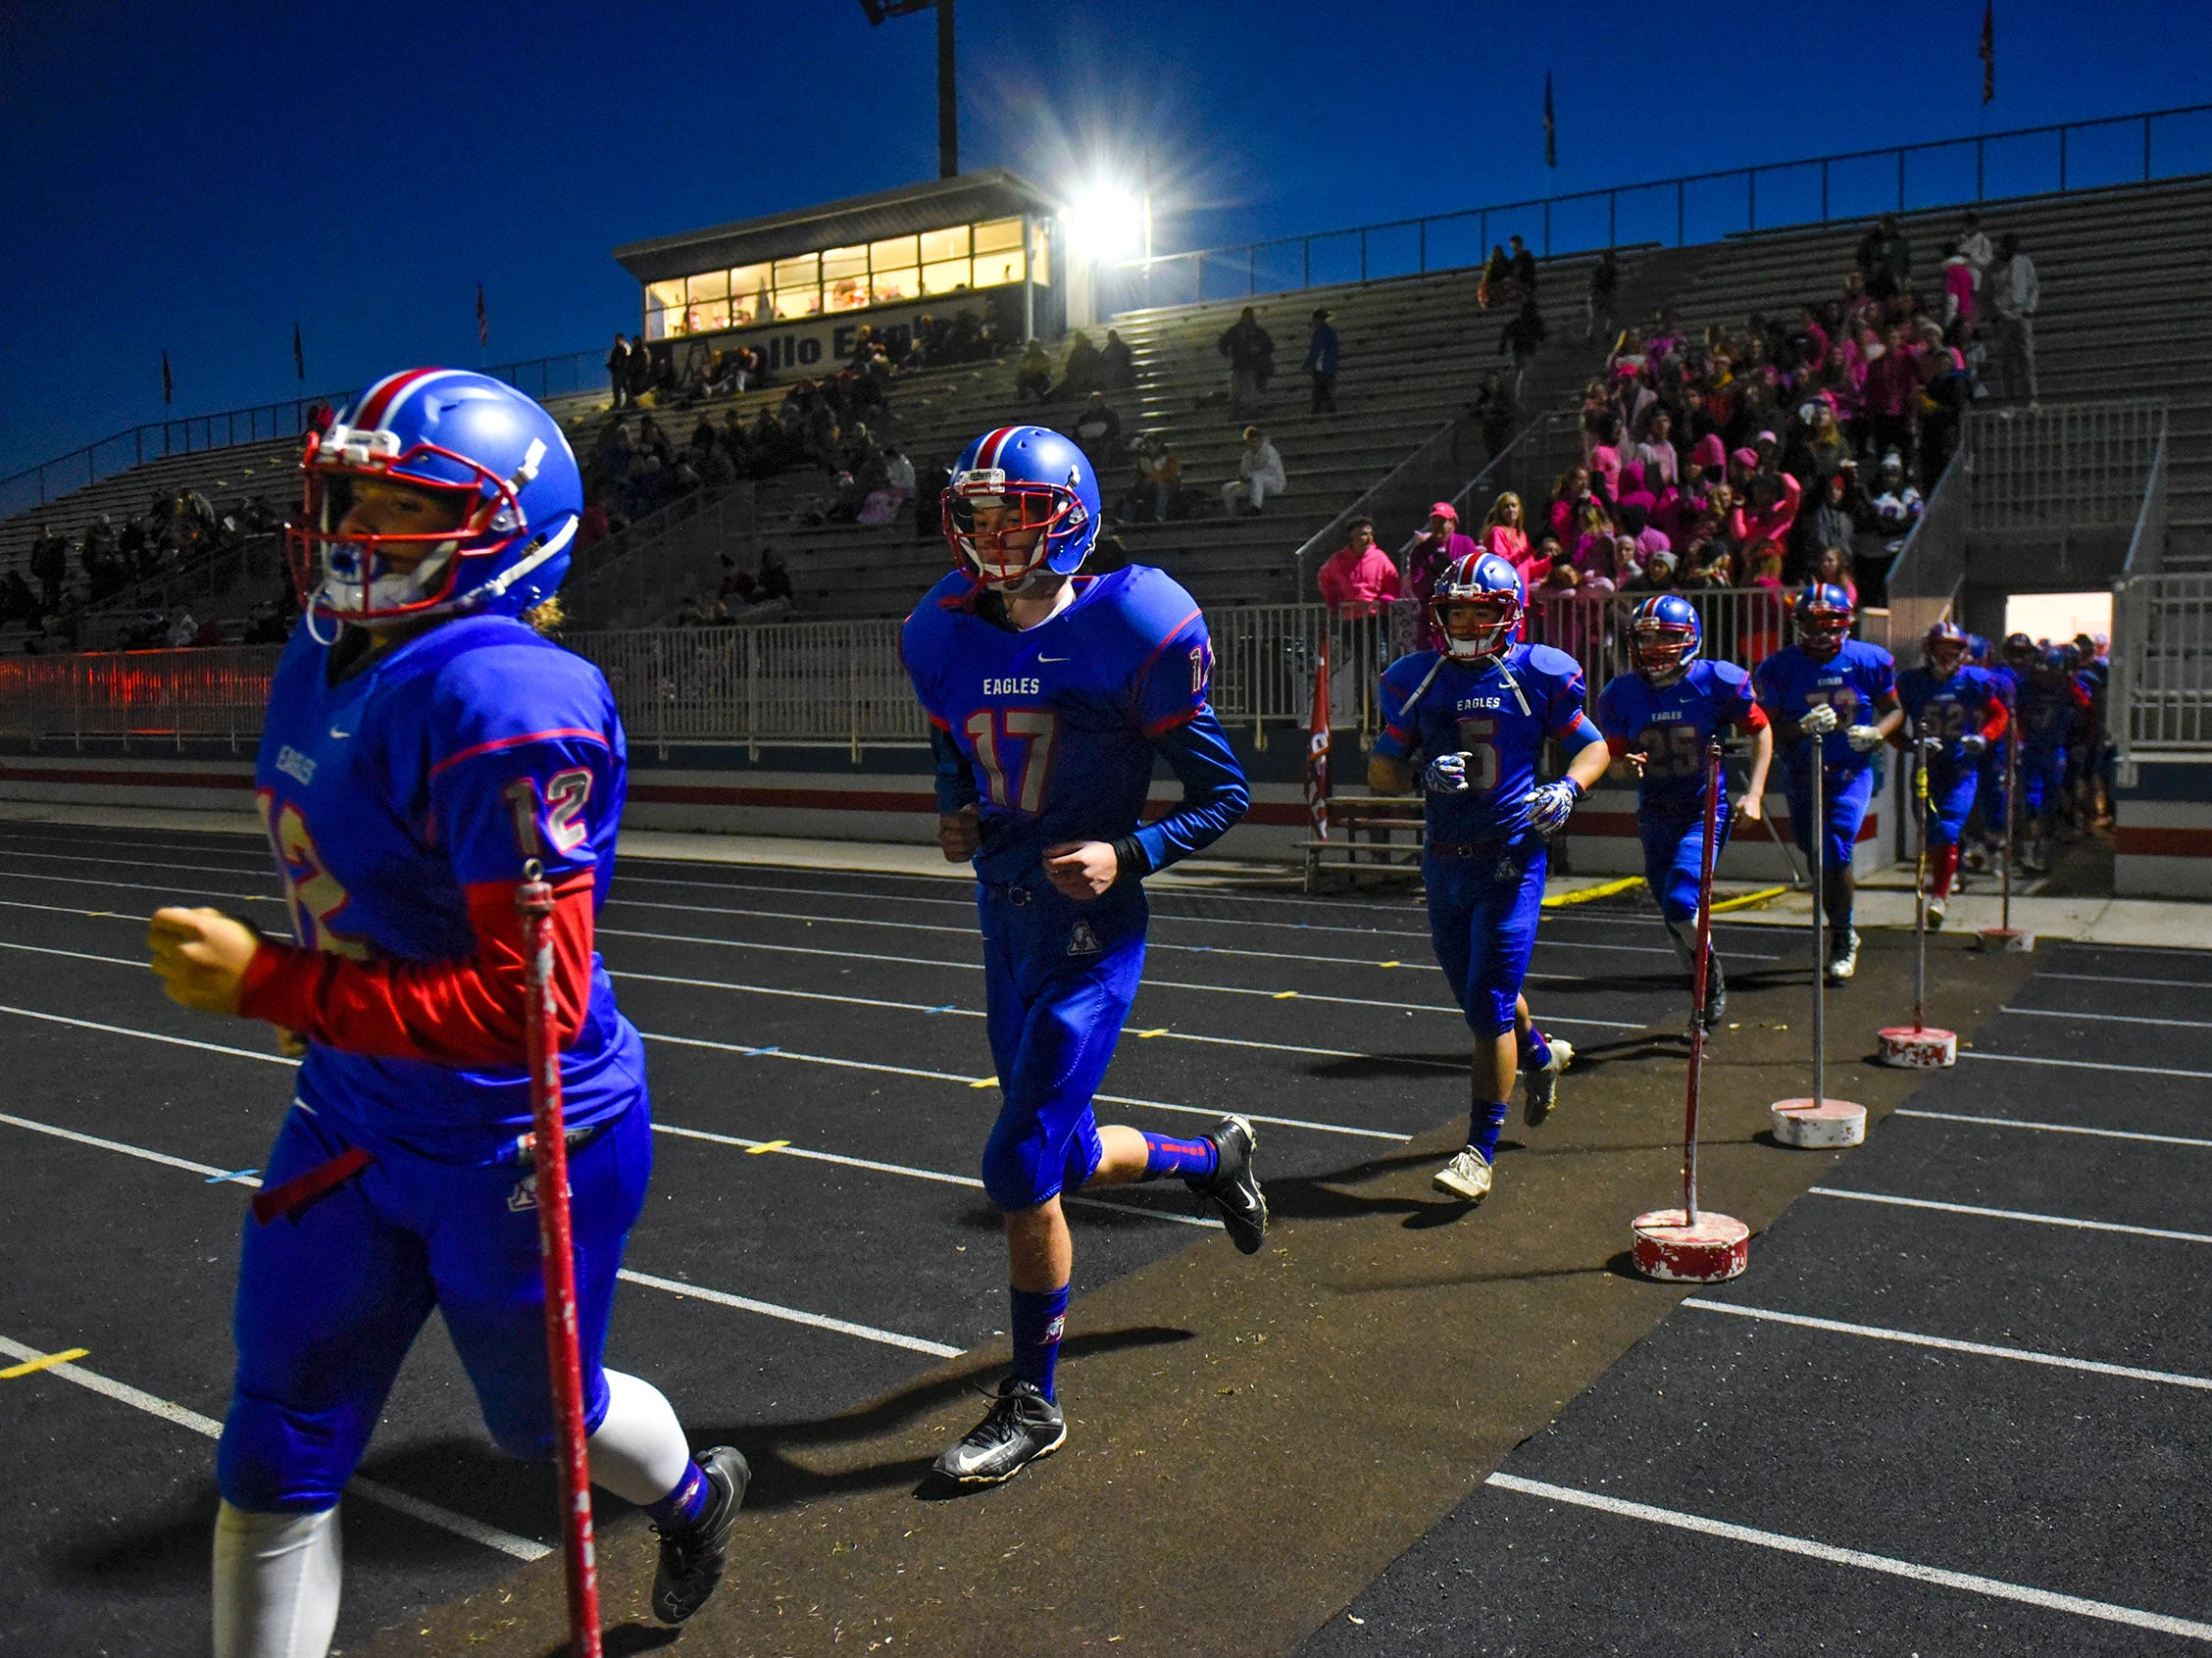 Apollo players take the field before the start of the Tuesday, Oct. 23, game against Little Falls in St. Cloud.